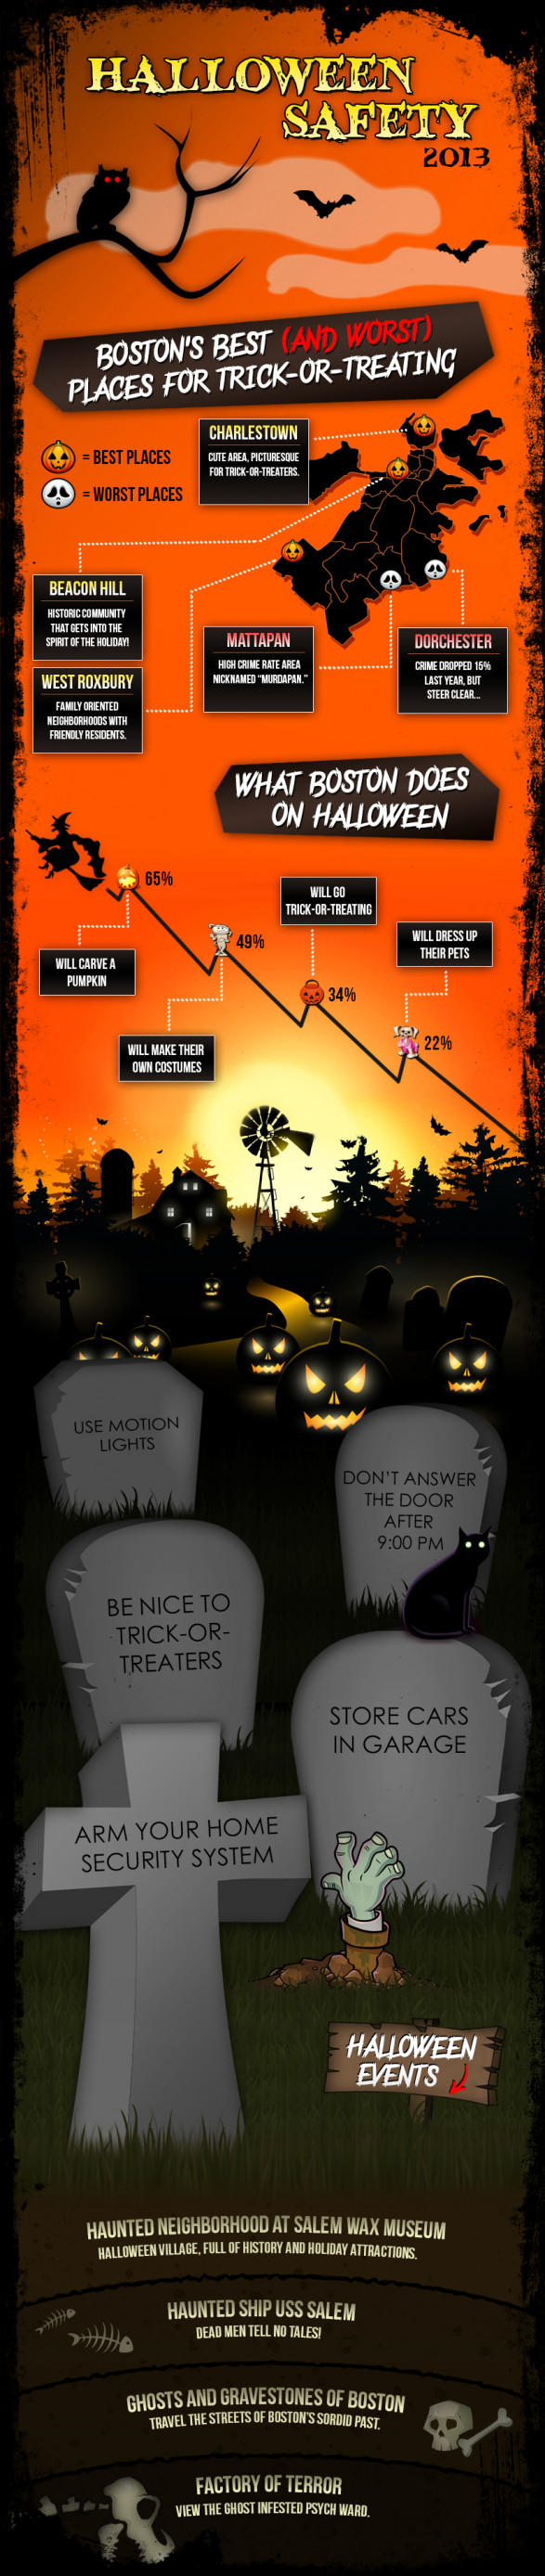 Halloween Safety infographic Halloween Safety for 2013: Be Safe This Halloween!